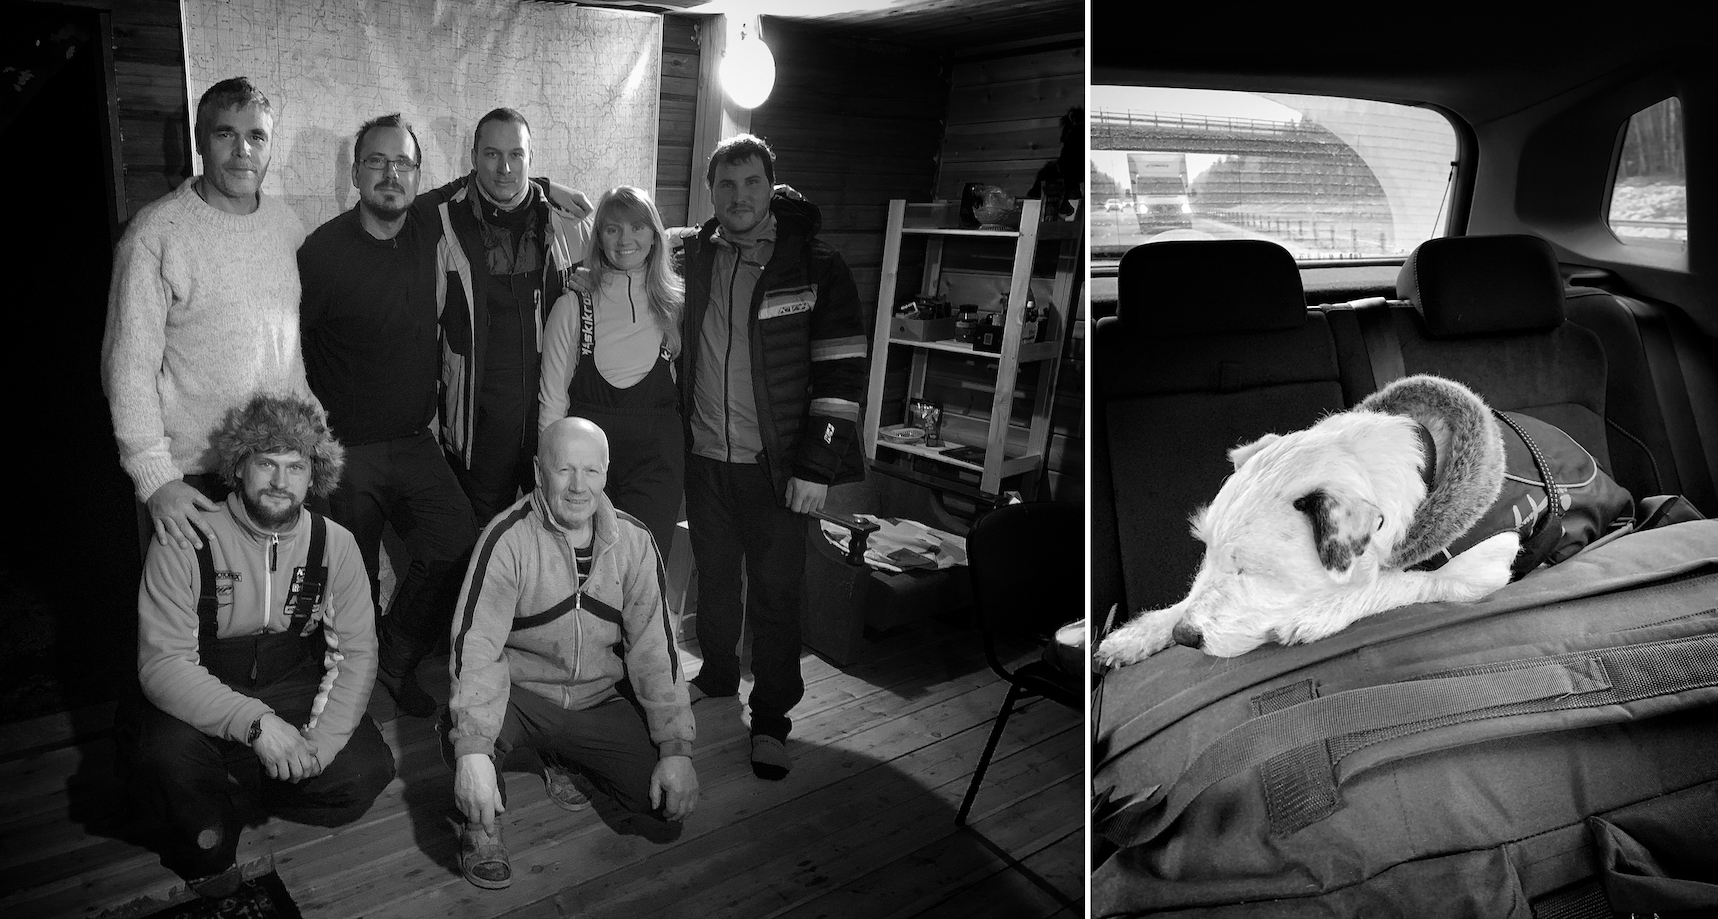 Dyatlov Pass: Many thanks to Vladimir and Vladislav for their great hospitality when repacking in the village of Vizhay.